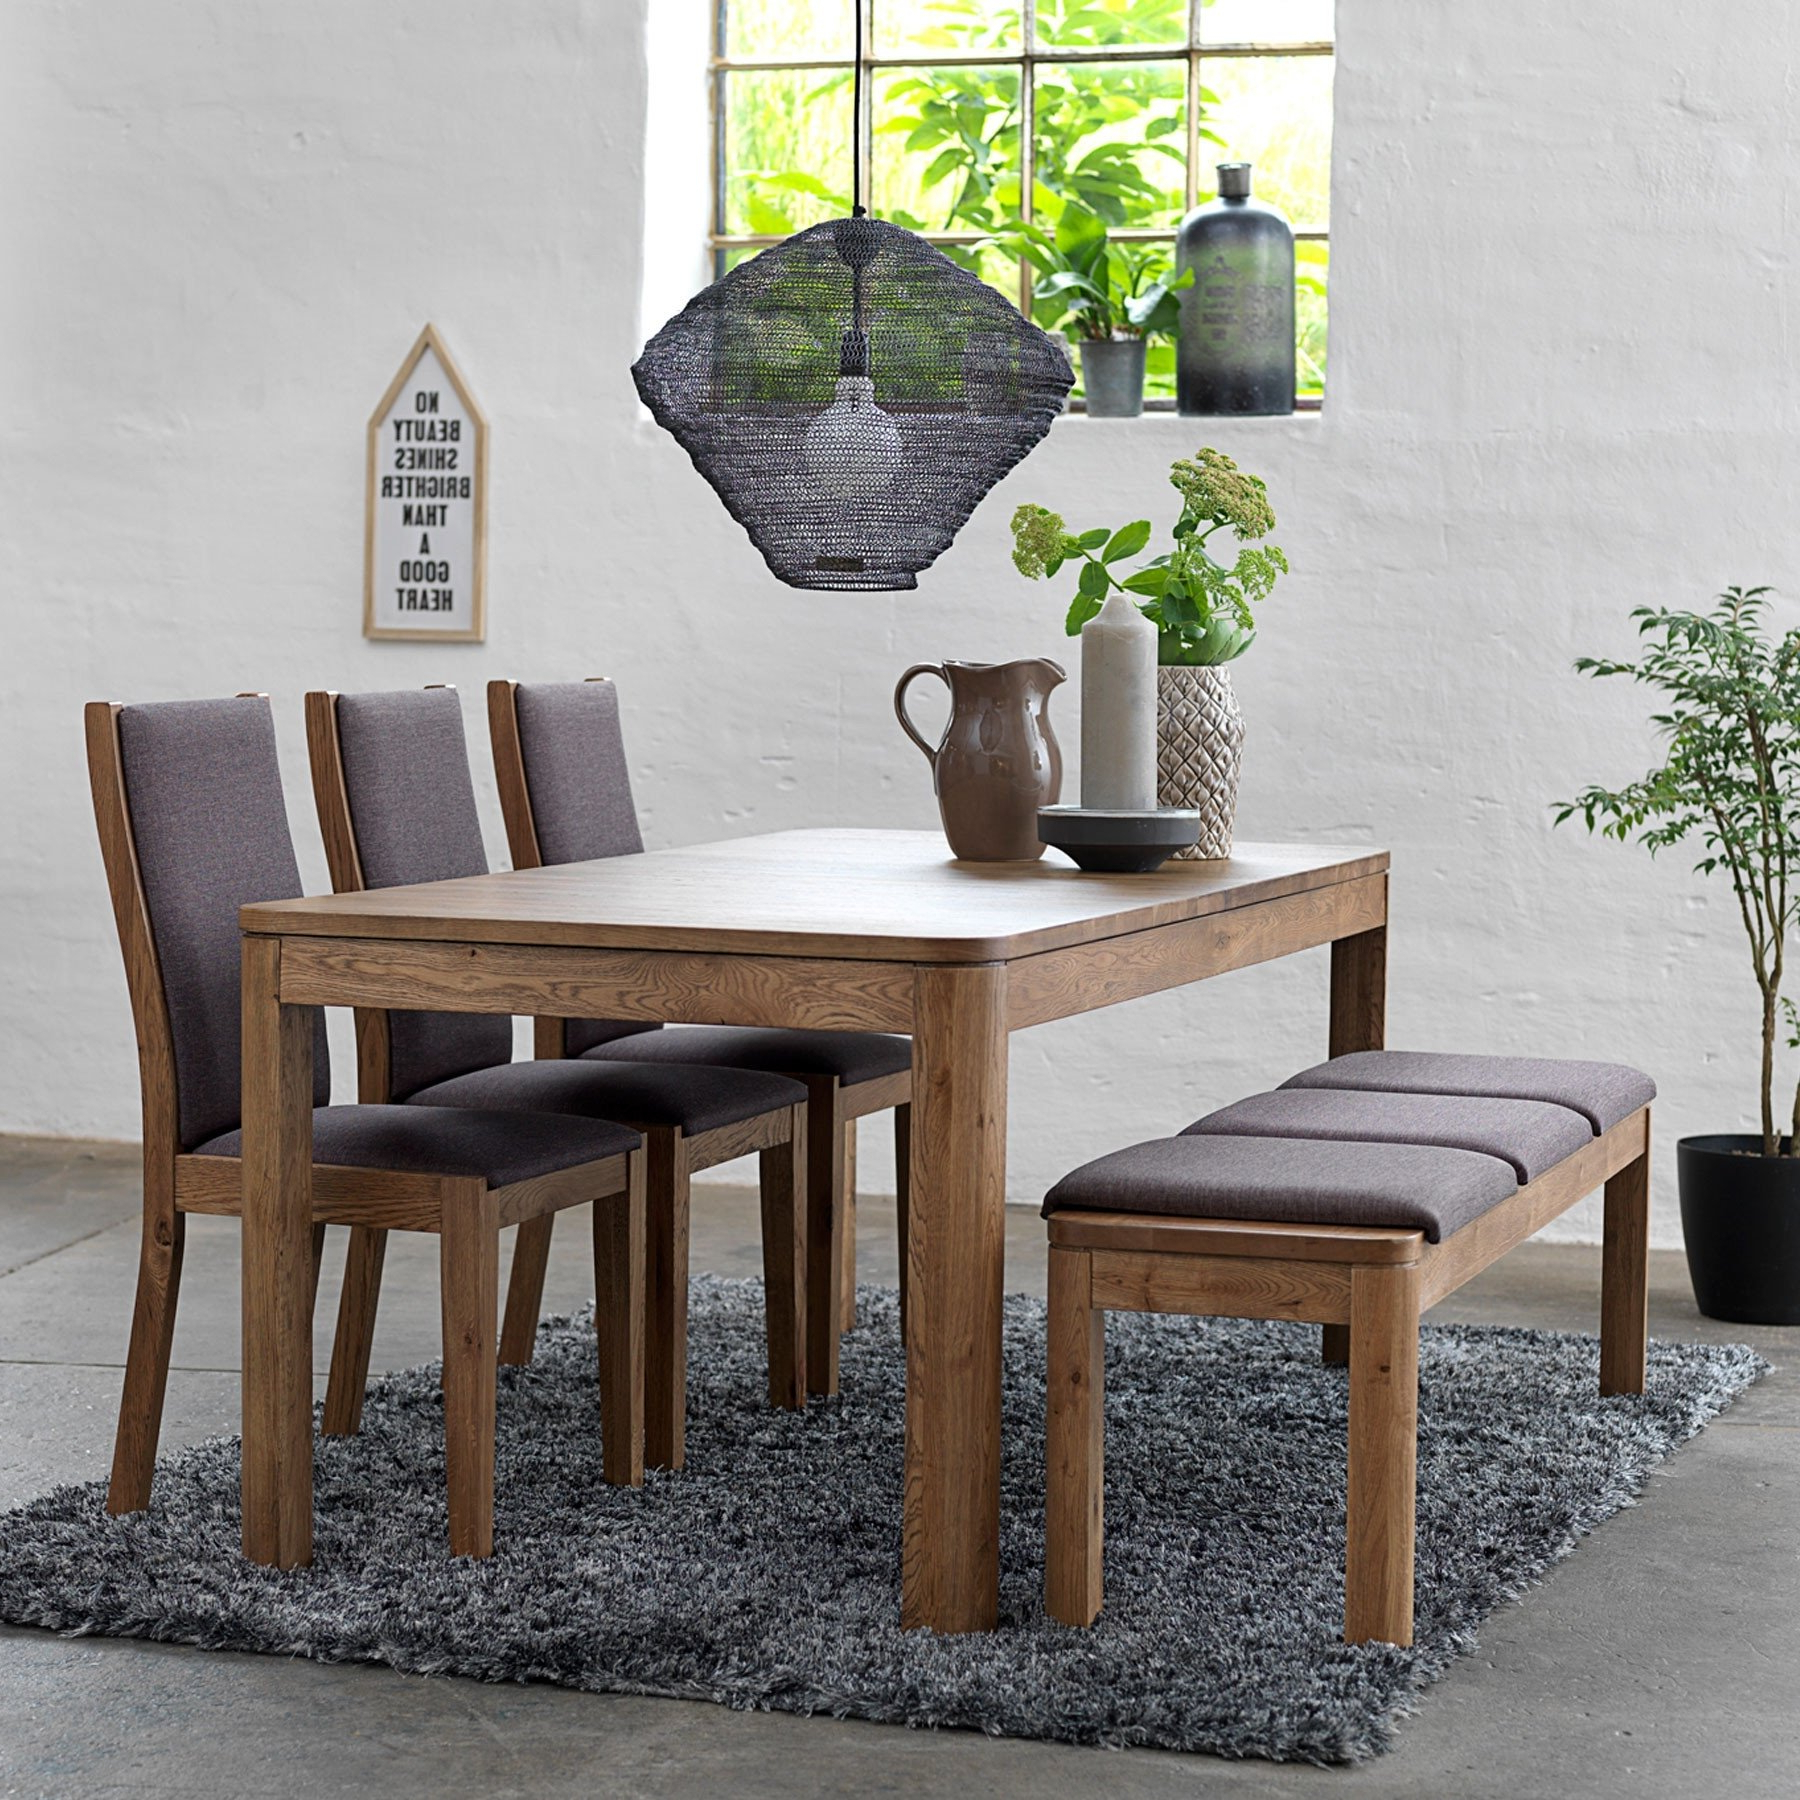 3 Piece Dining Table And Chairs Property With Bench Visual With 2017 3 Pieces Dining Tables And Chair Set (Gallery 21 of 30)